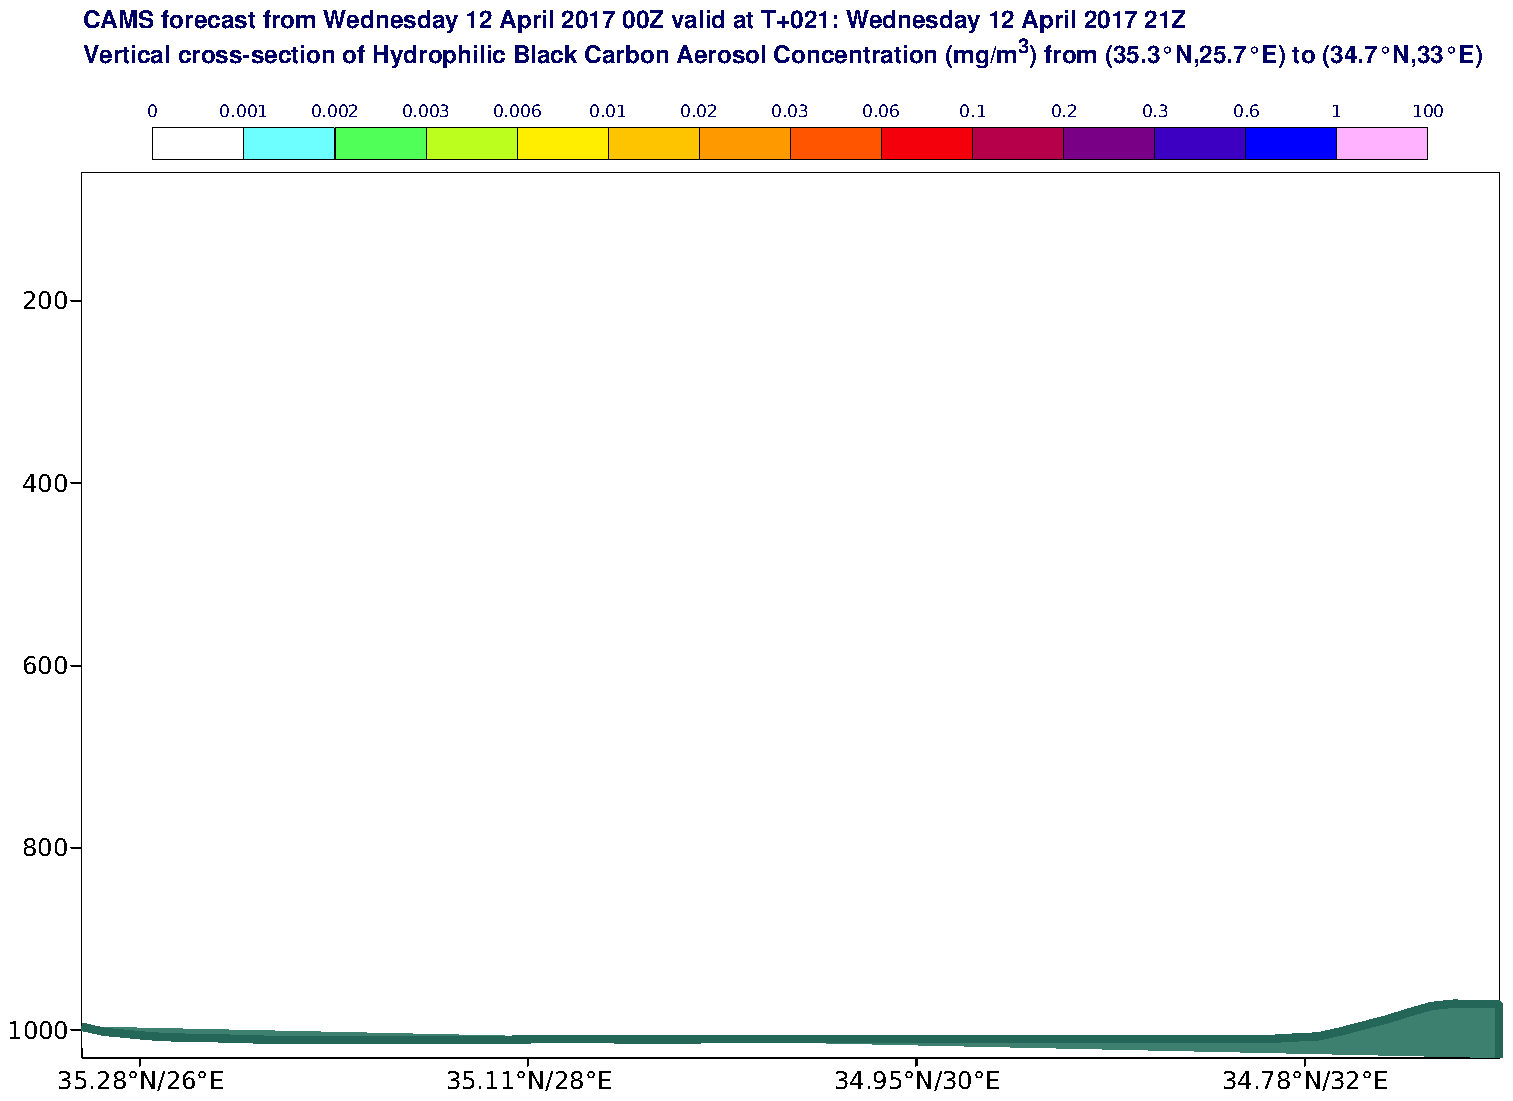 Vertical cross-section of Hydrophilic Black Carbon Aerosol Concentration (mg/m3) valid at T21 - 2017-04-12 21:00